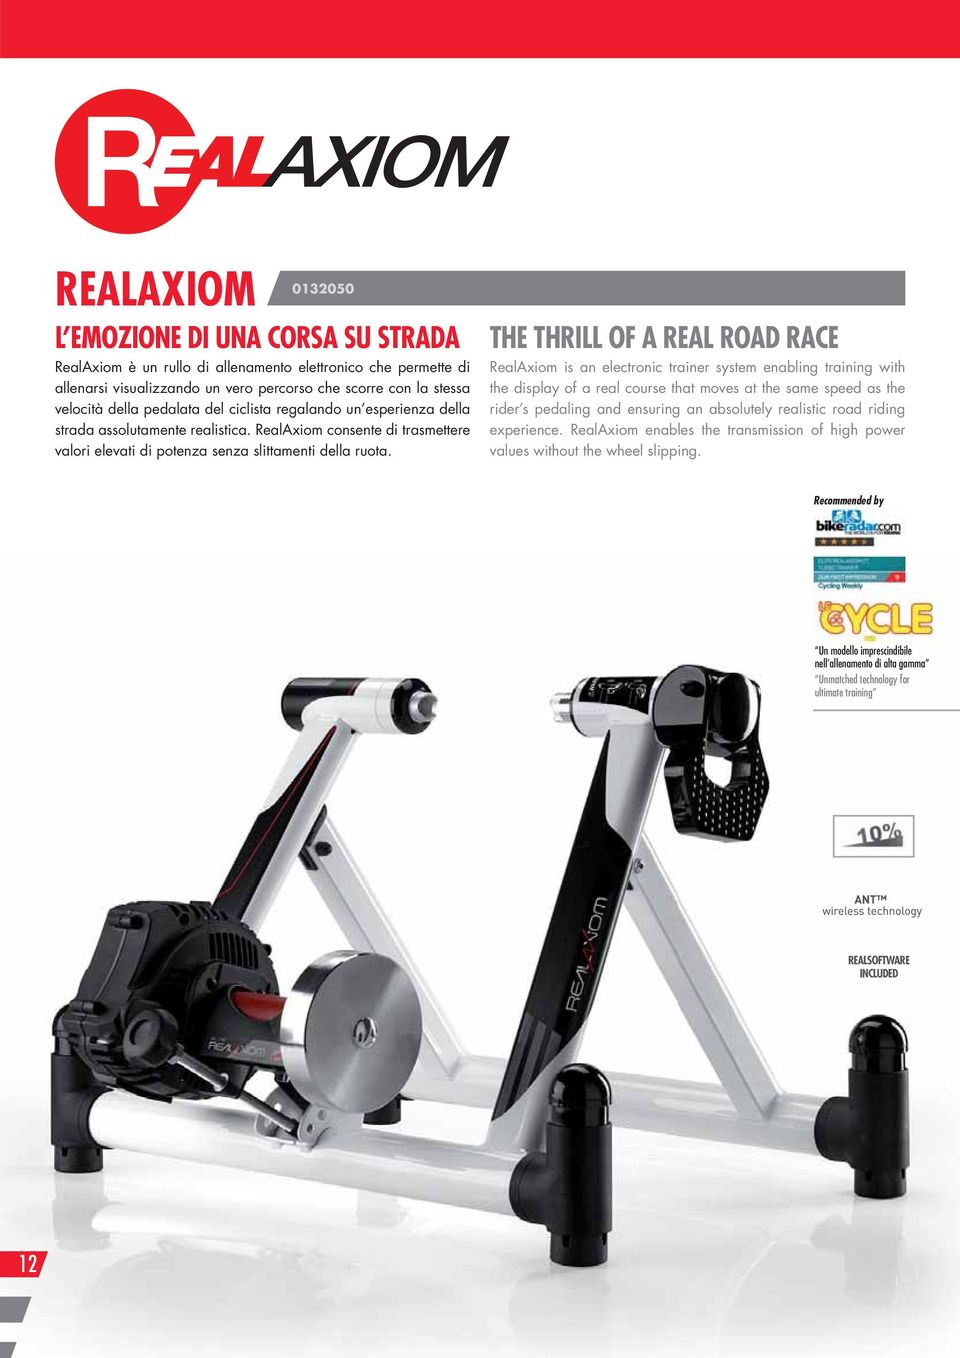 THE THRILL OF A REAL ROAD RACE RealAxiom is an electronic trainer system enabling training with the display of a real course that moves at the same speed as the rider s pedaling and ensuring an